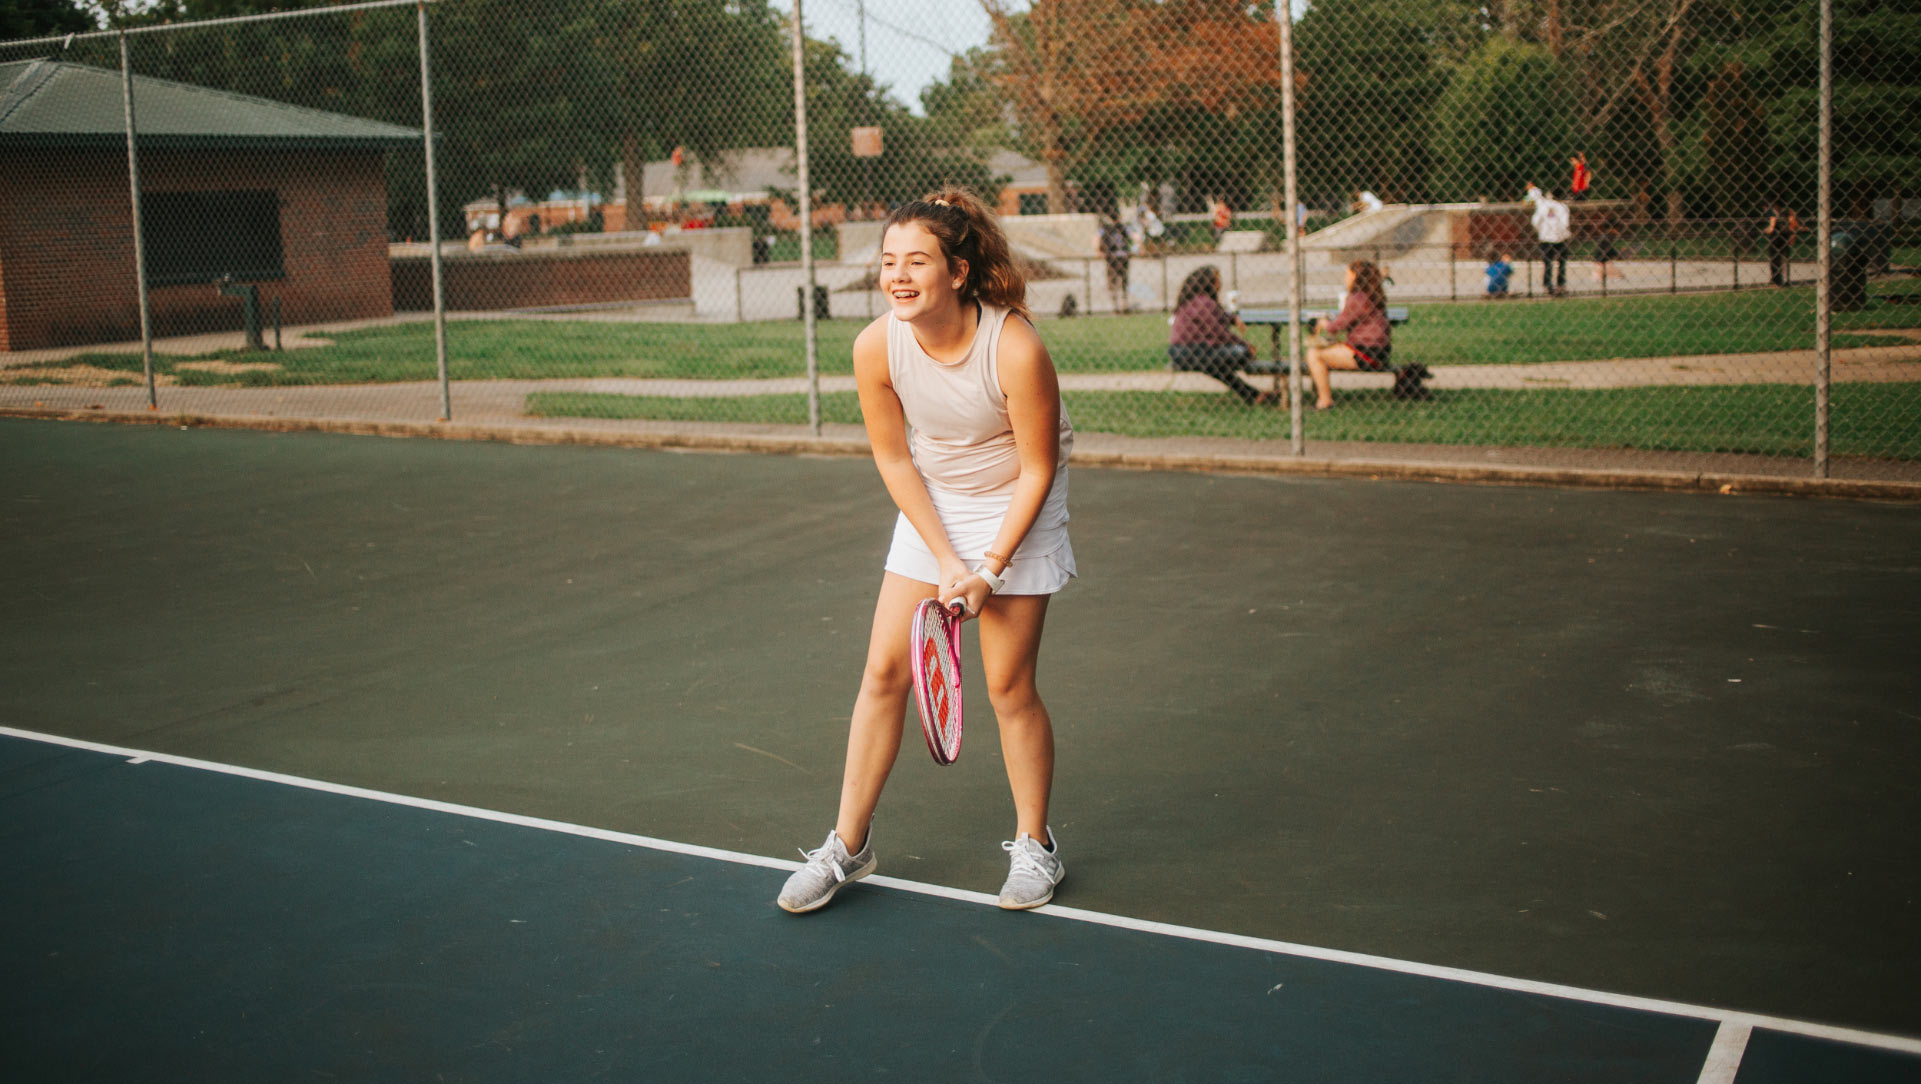 An action shot of Isabella, 12 years old, on the tennis court. She is wearing a white skirt and a gray tank top, and her curly brown hair is pulled back inn a ponytail.